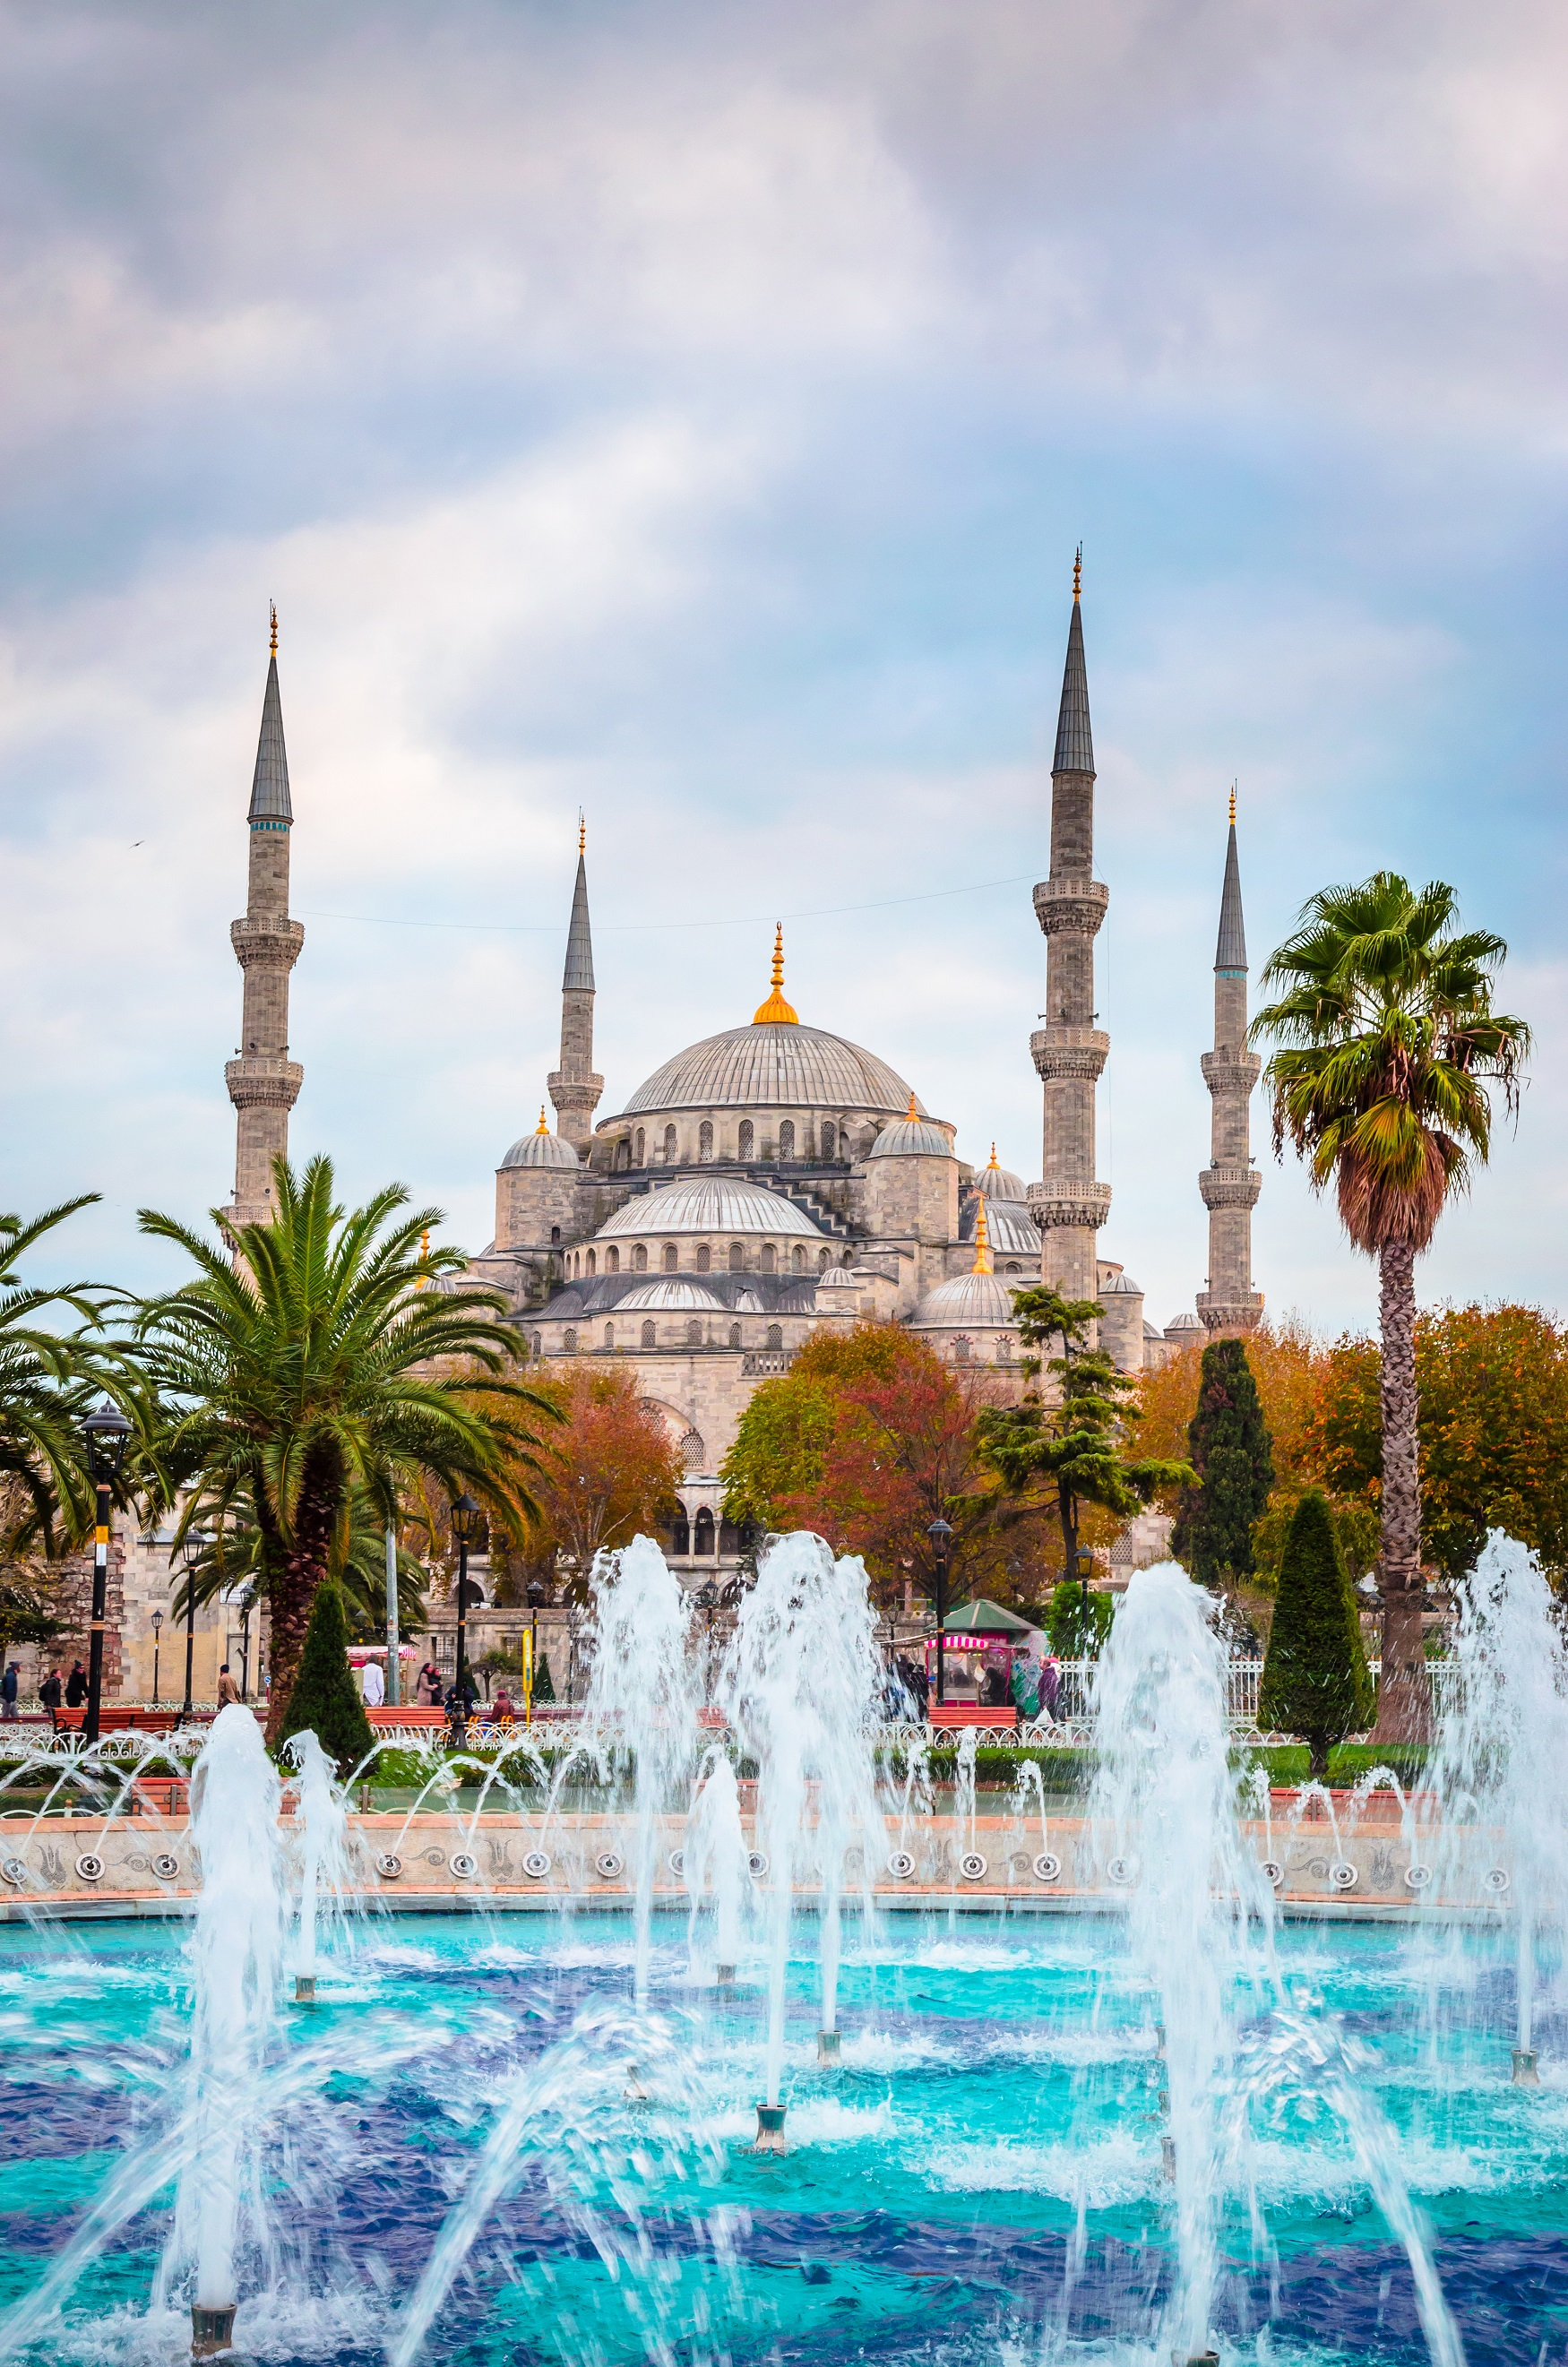 Photo of the Blue Mosque in Istanbul in front of a fountain